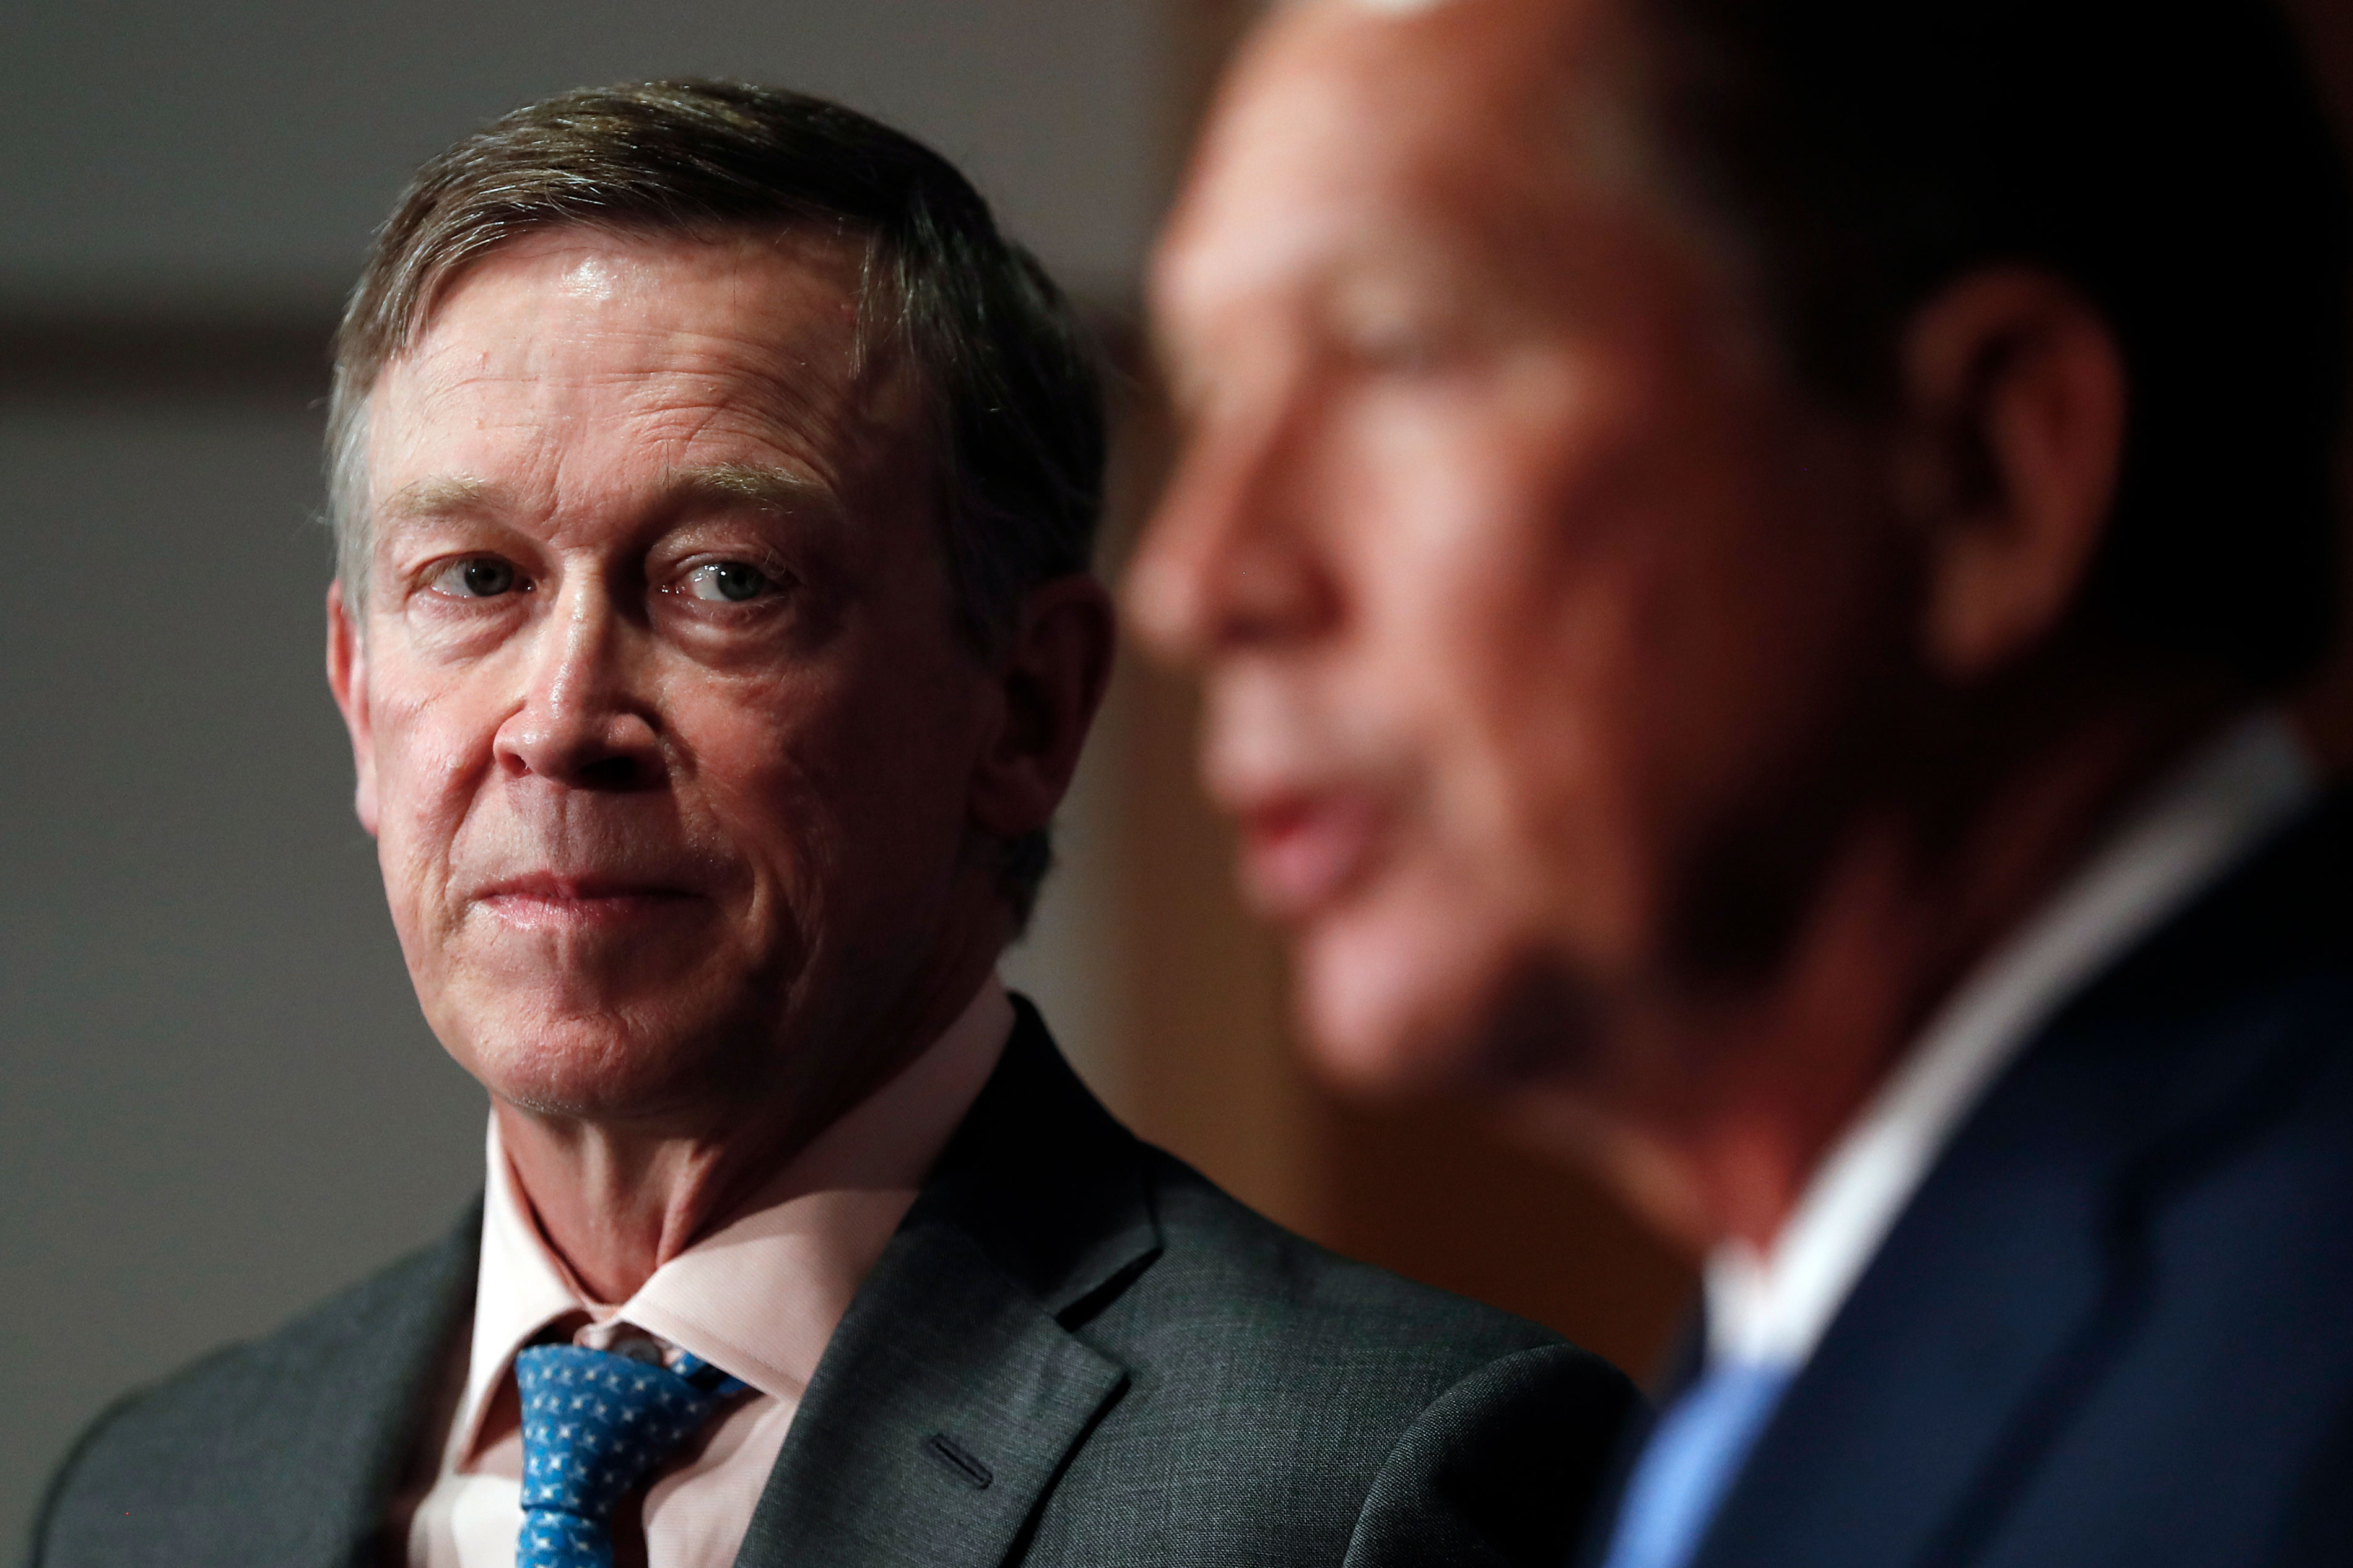 <p>Colorado Gov. John Hickenlooper looks to Ohio Gov. John Kasich as he speaks about overhauling health care at the National Press Club in Washington, D.C., Tuesday, June 27, 2017.</p>